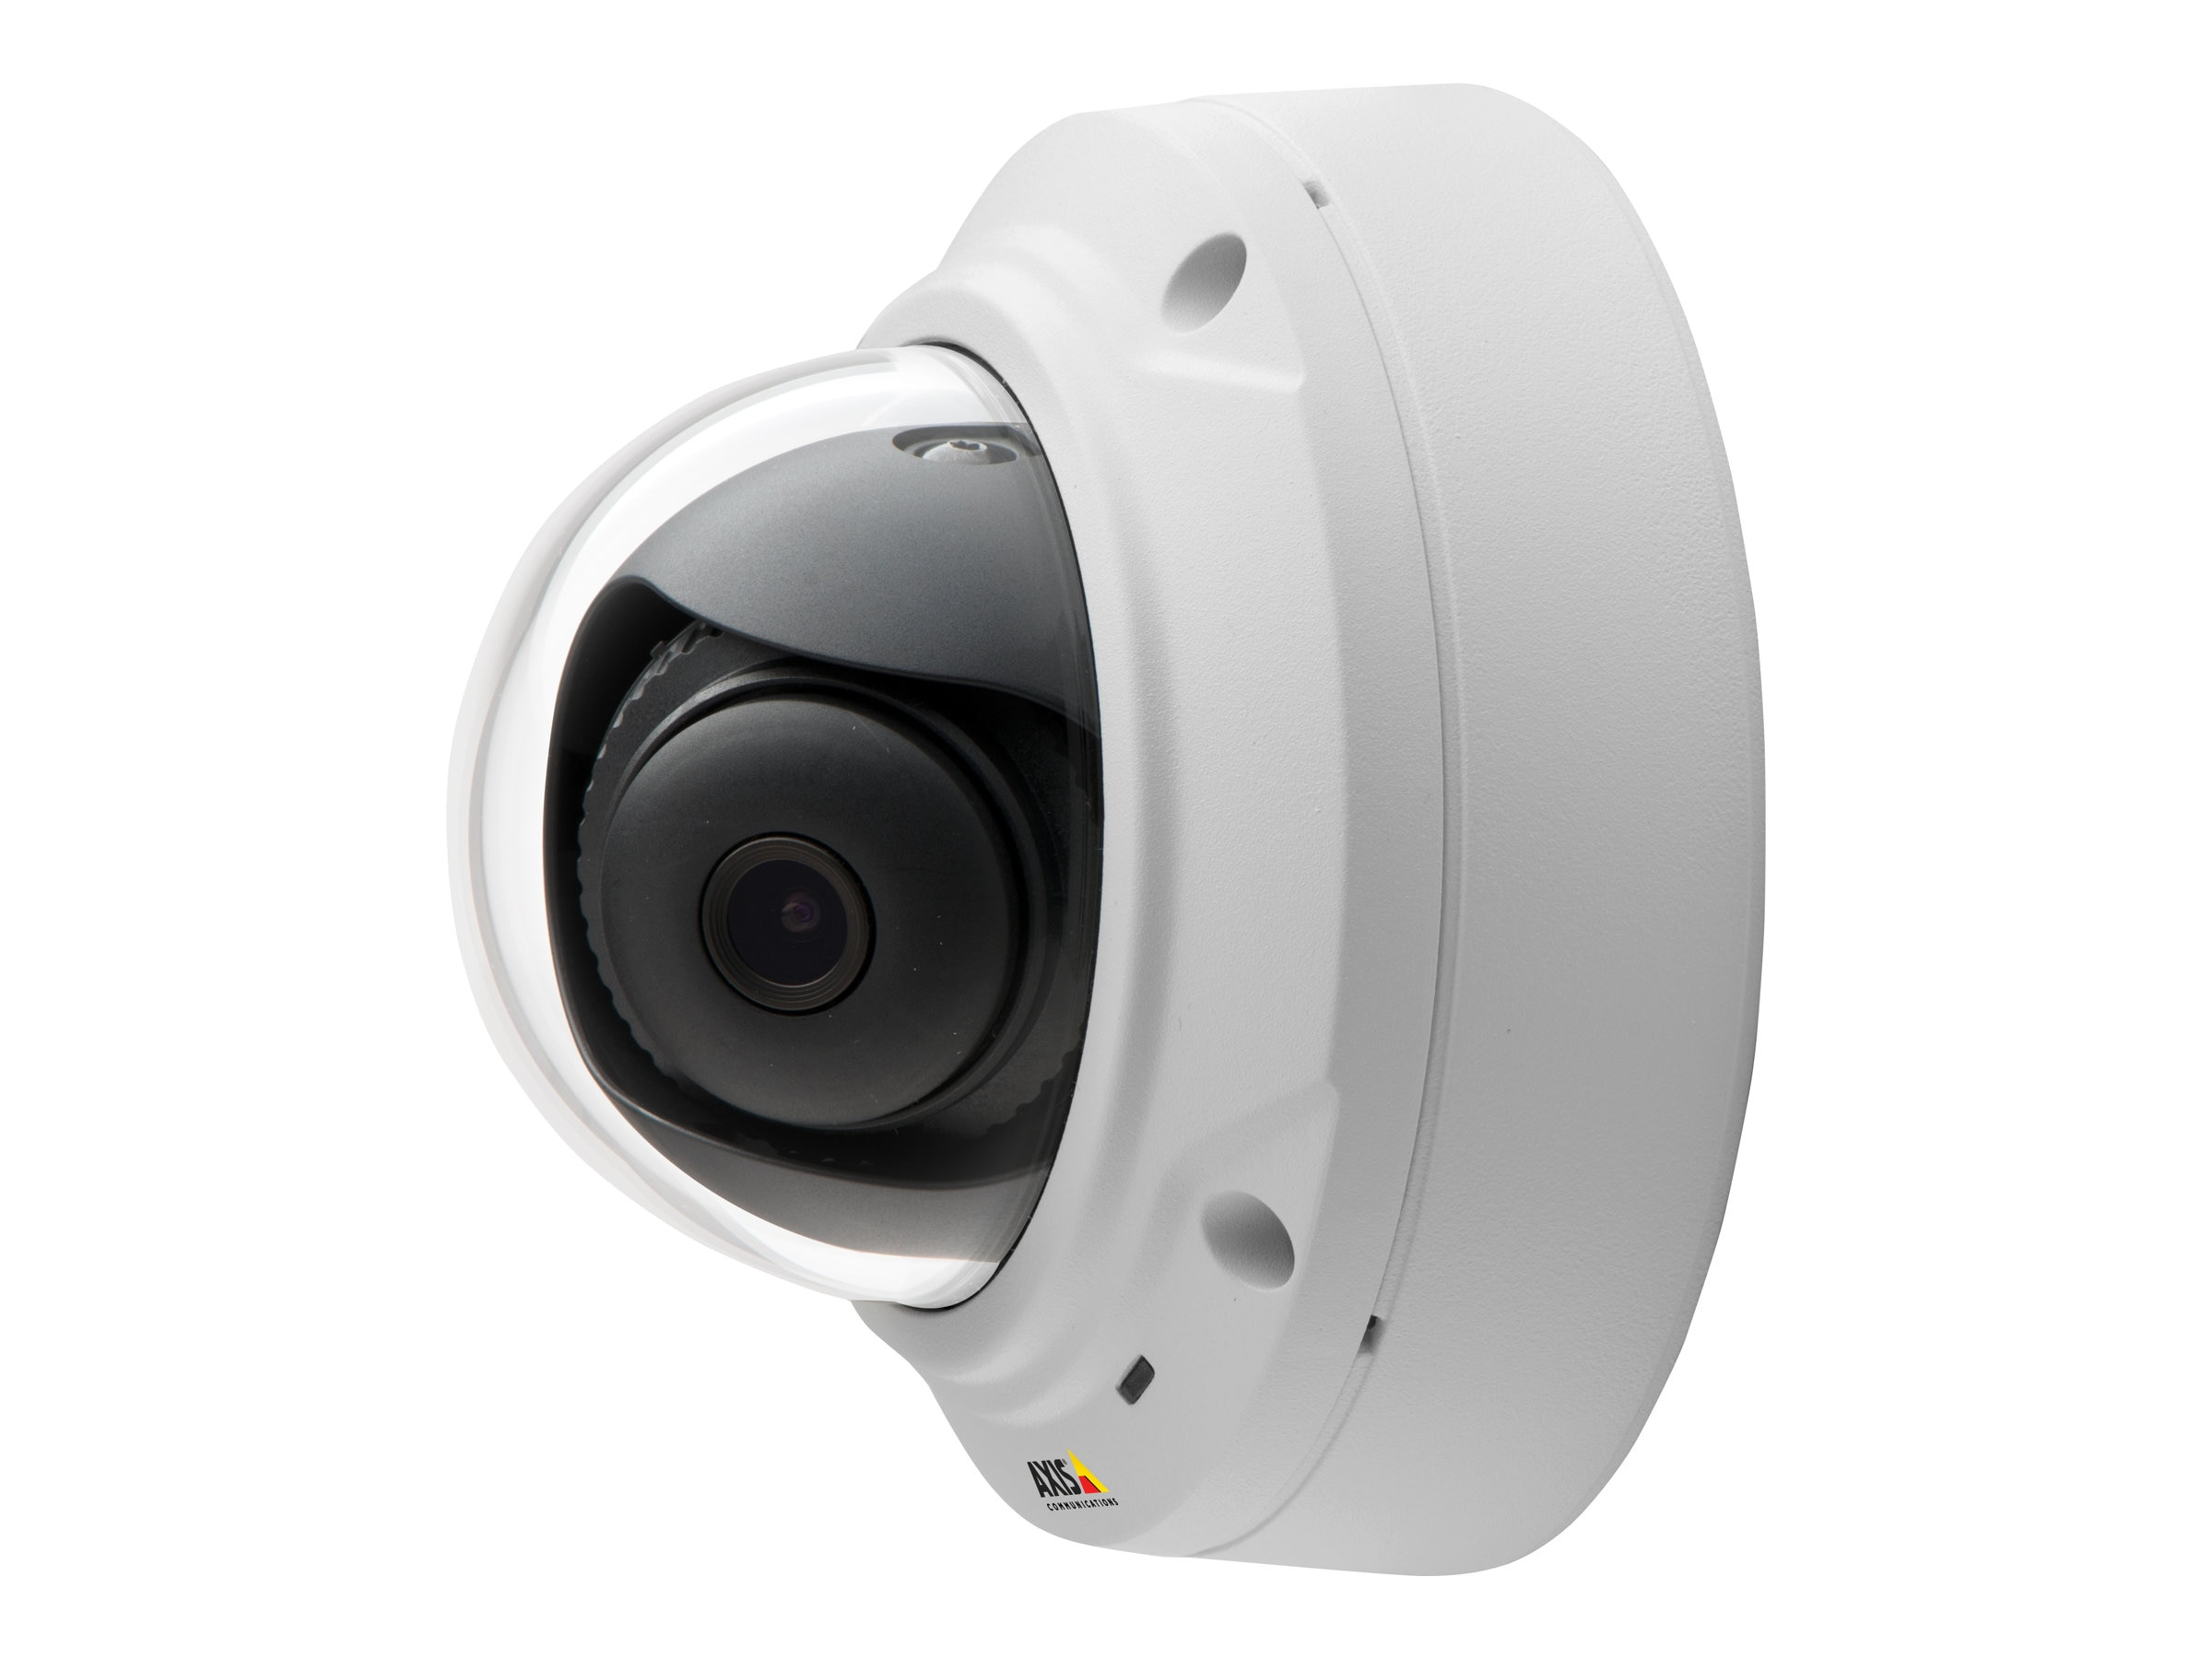 Axis M3025-VE Outdoor Day Night Network Camera